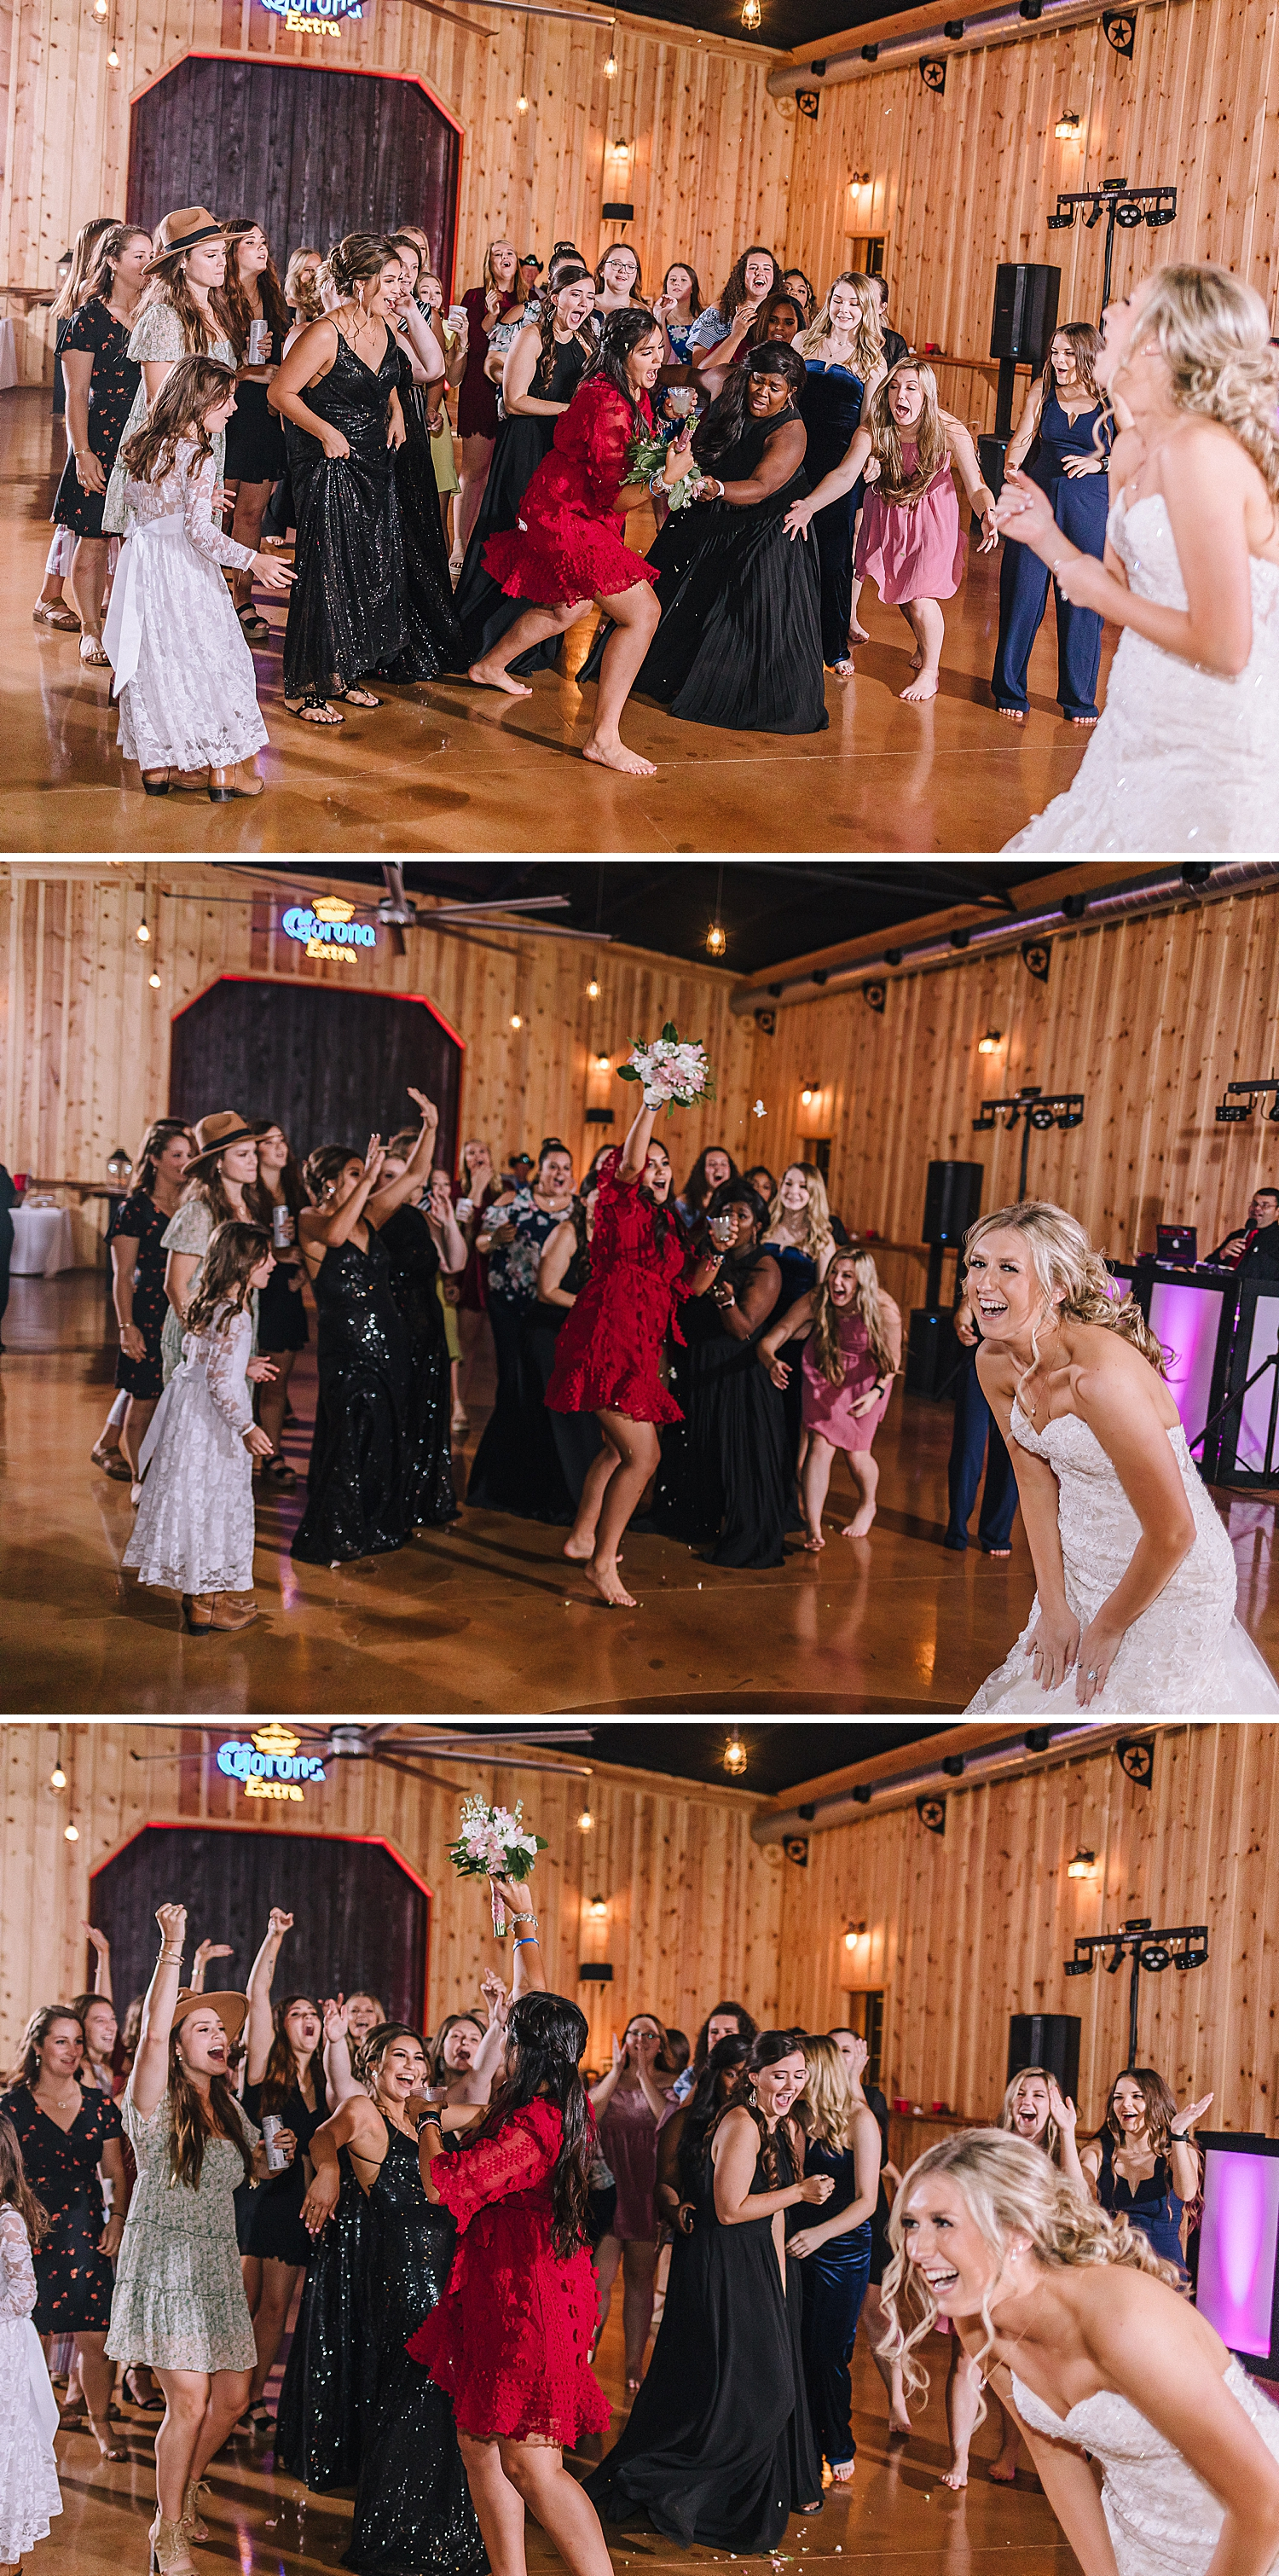 Rackler-Ranch-LaVernia-Texas-Wedding-Carly-Barton-Photography_0167.jpg